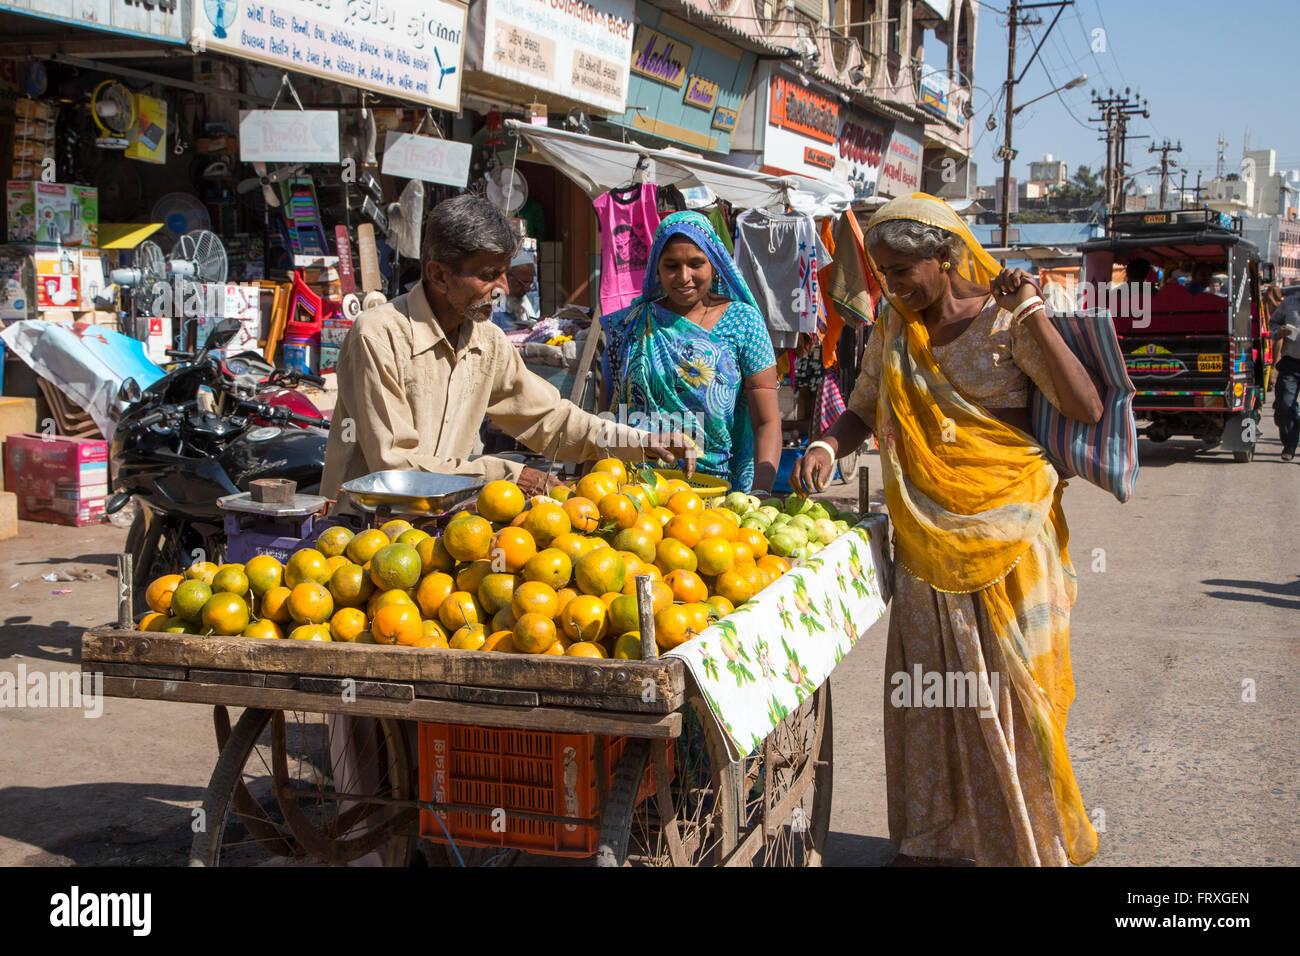 Two women at a fruit stand in the city center, Porbandar, Gujarat, India - Stock Image